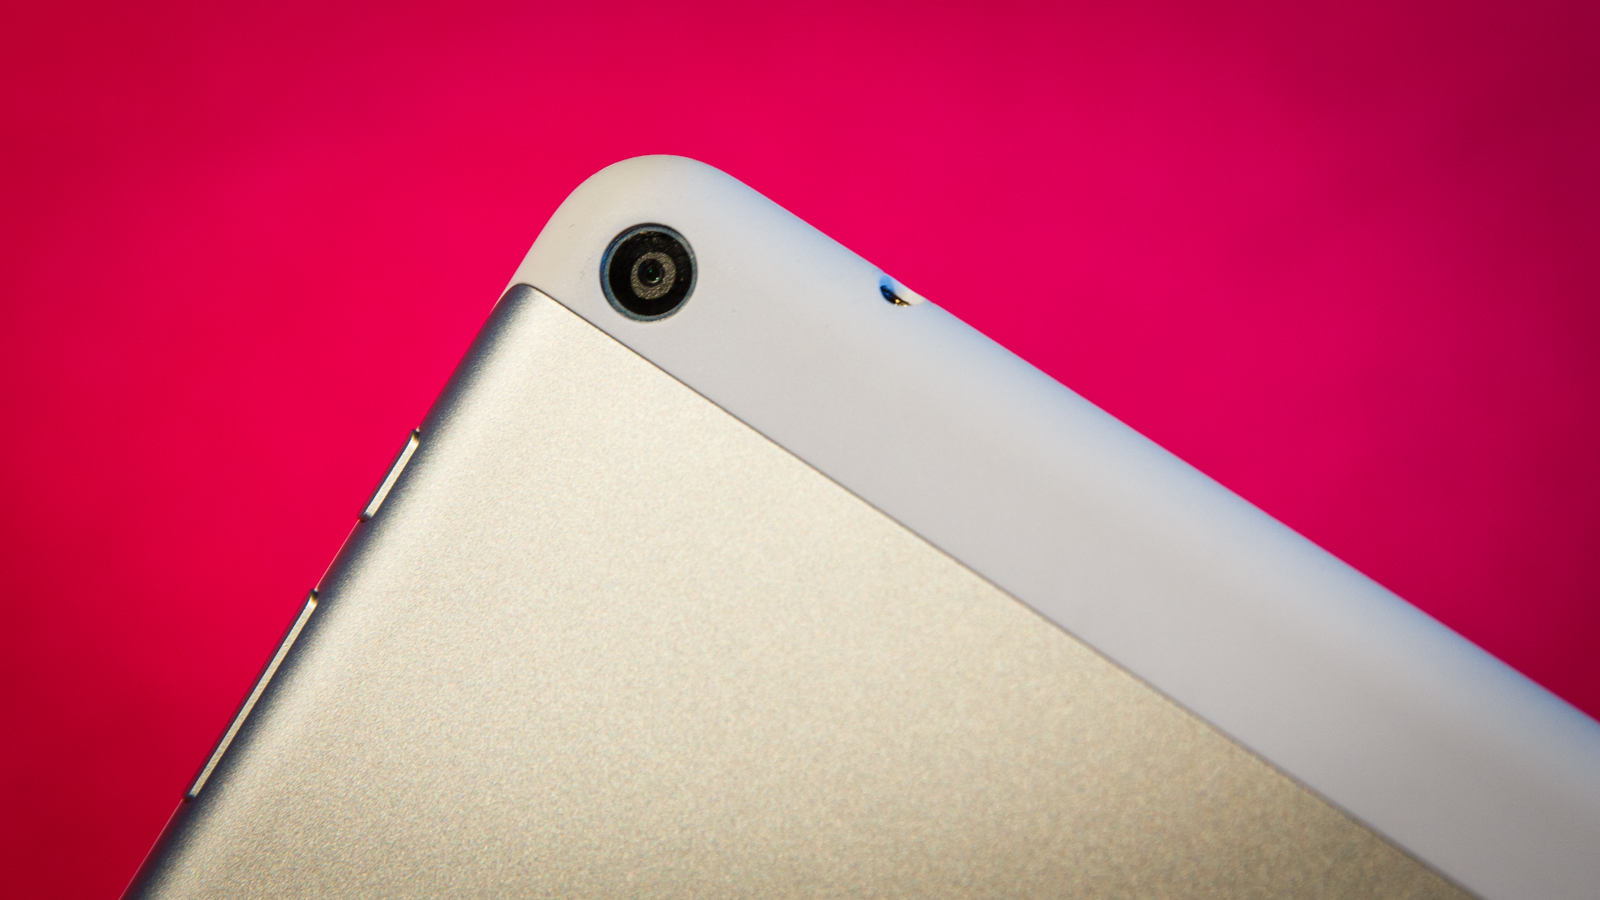 A 5-megapixel shooter in the back